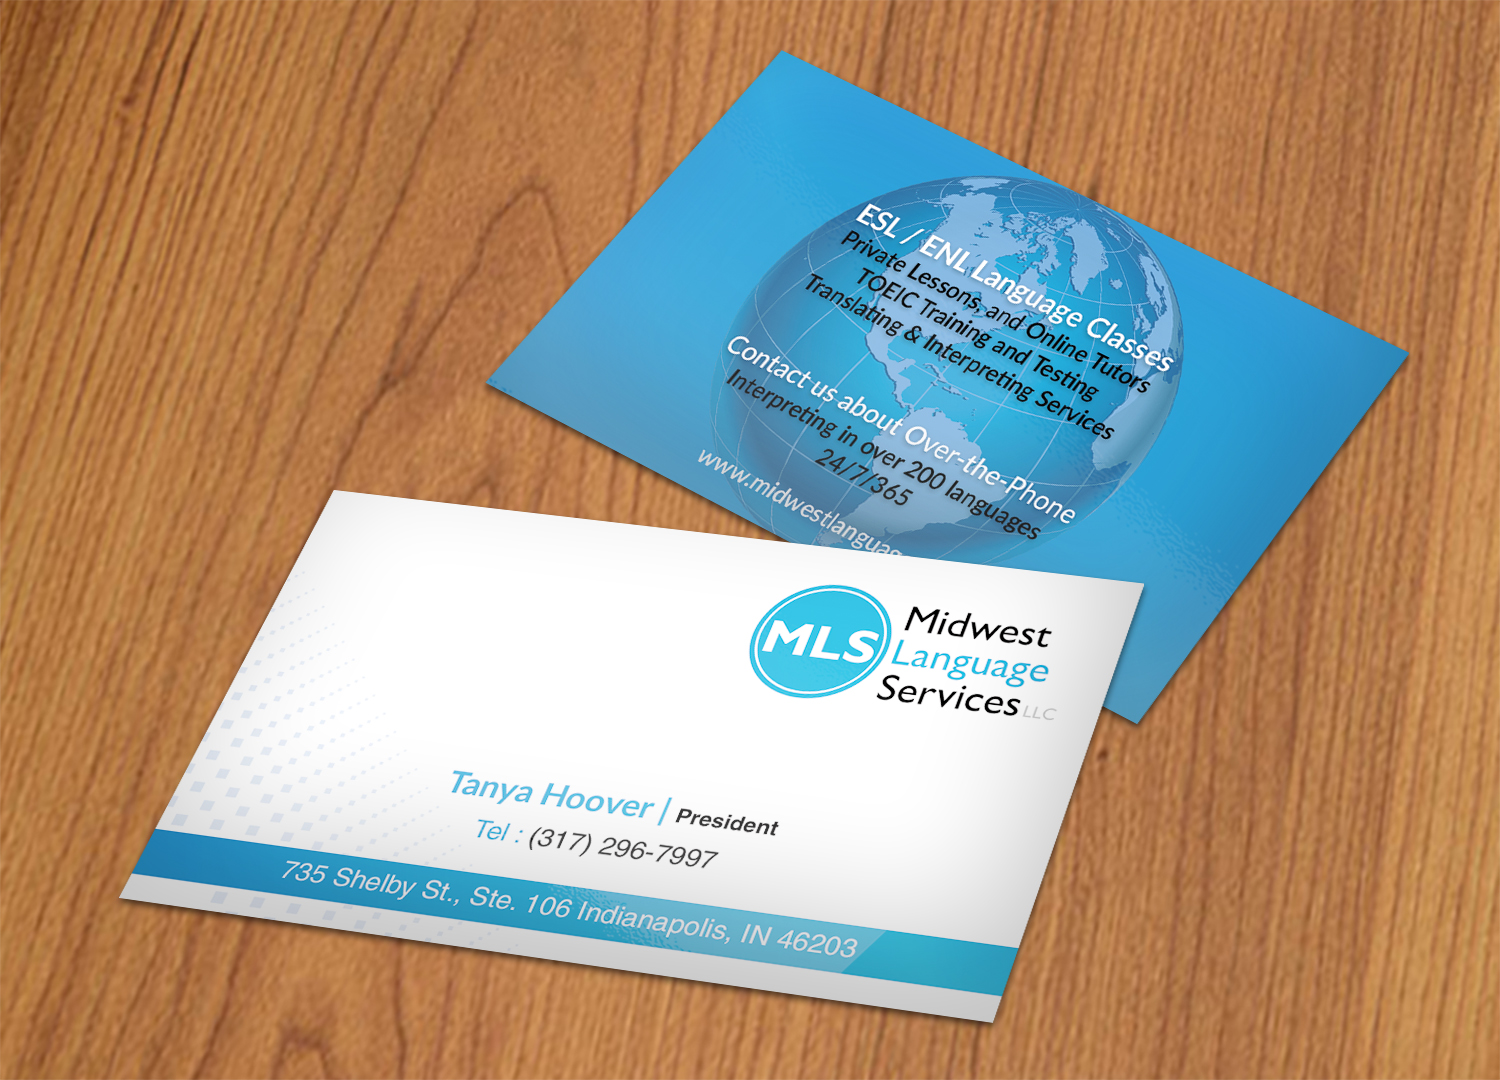 Serious modern business business card design for midwest language business card design by nuhanenterprise for midwest language services llc design 17741996 reheart Choice Image